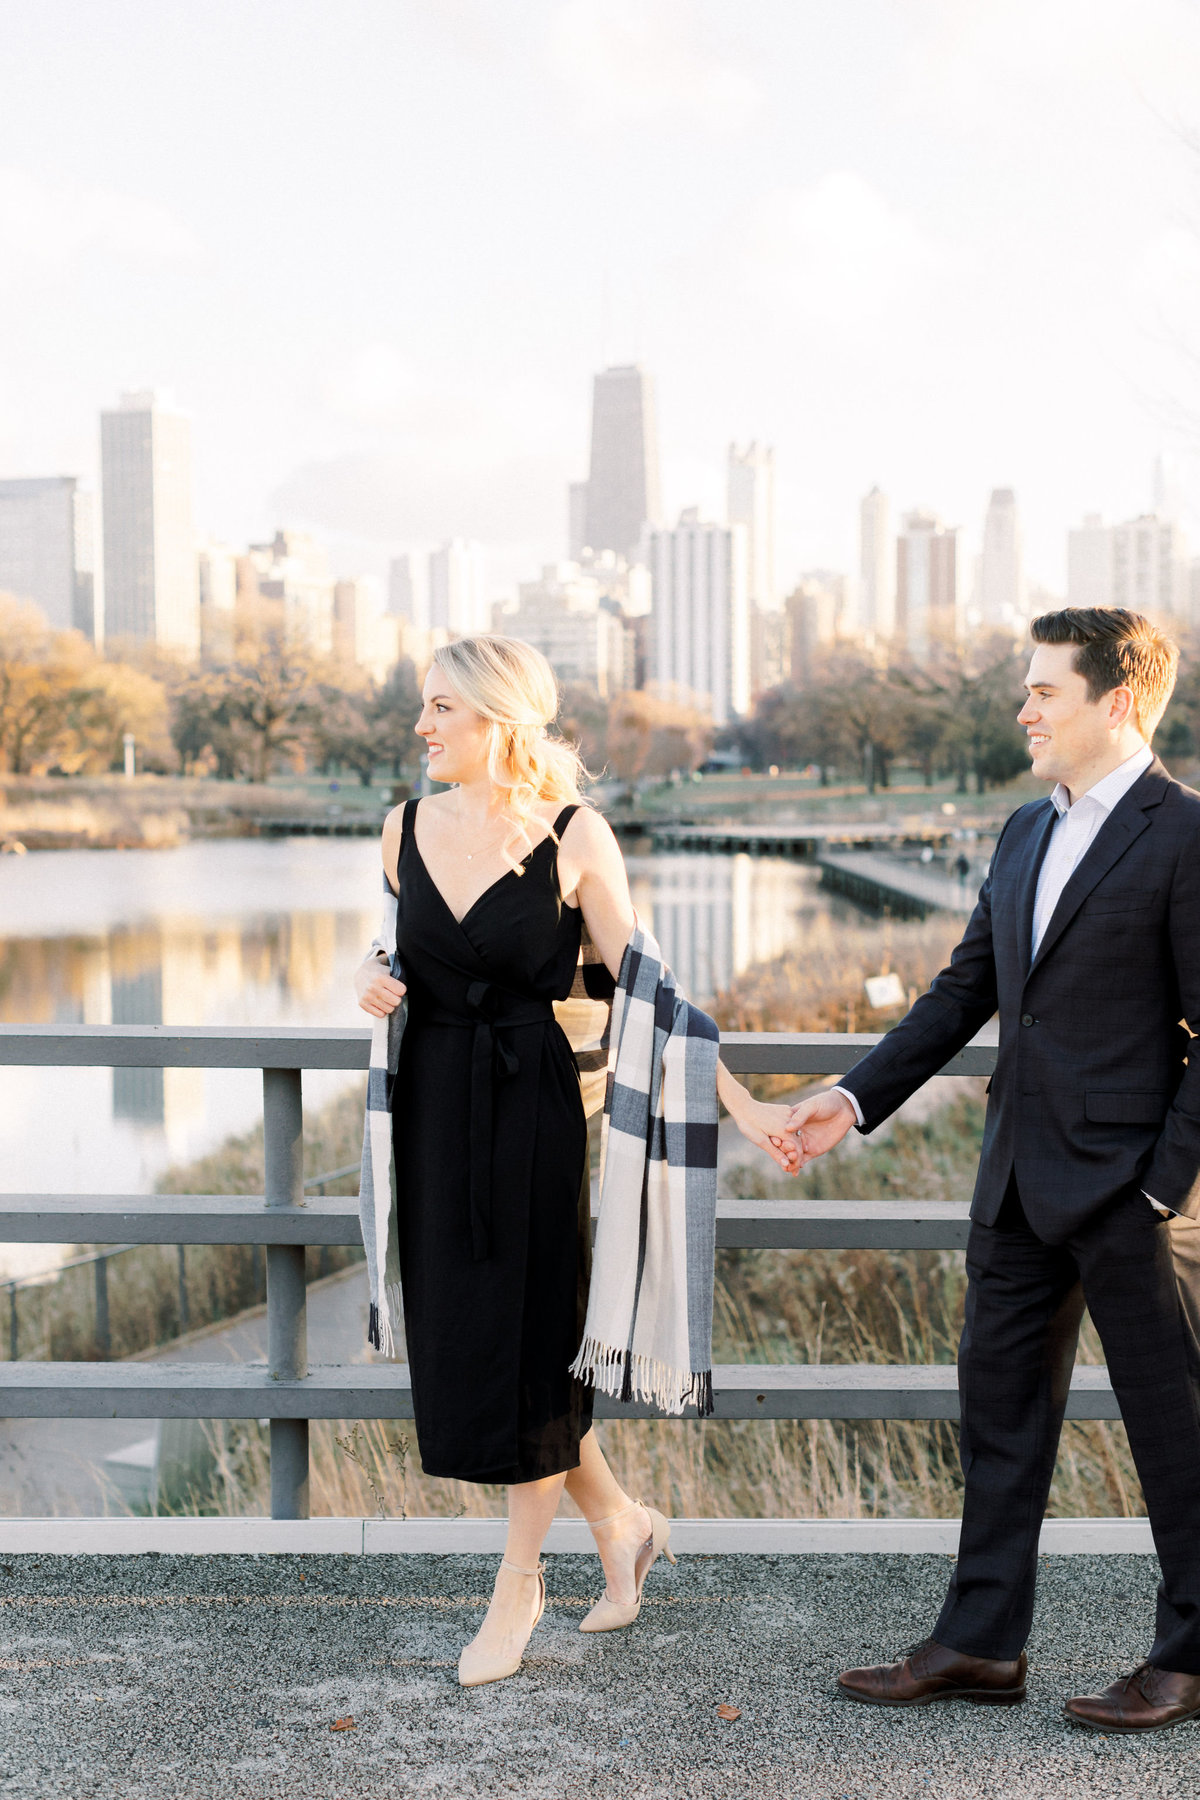 TiffaneyChildsPhotography-ChicagoWeddingPhotographer-AnneMarie+Connor-LincolnParkNatureBoardwalkEngagementSession-139